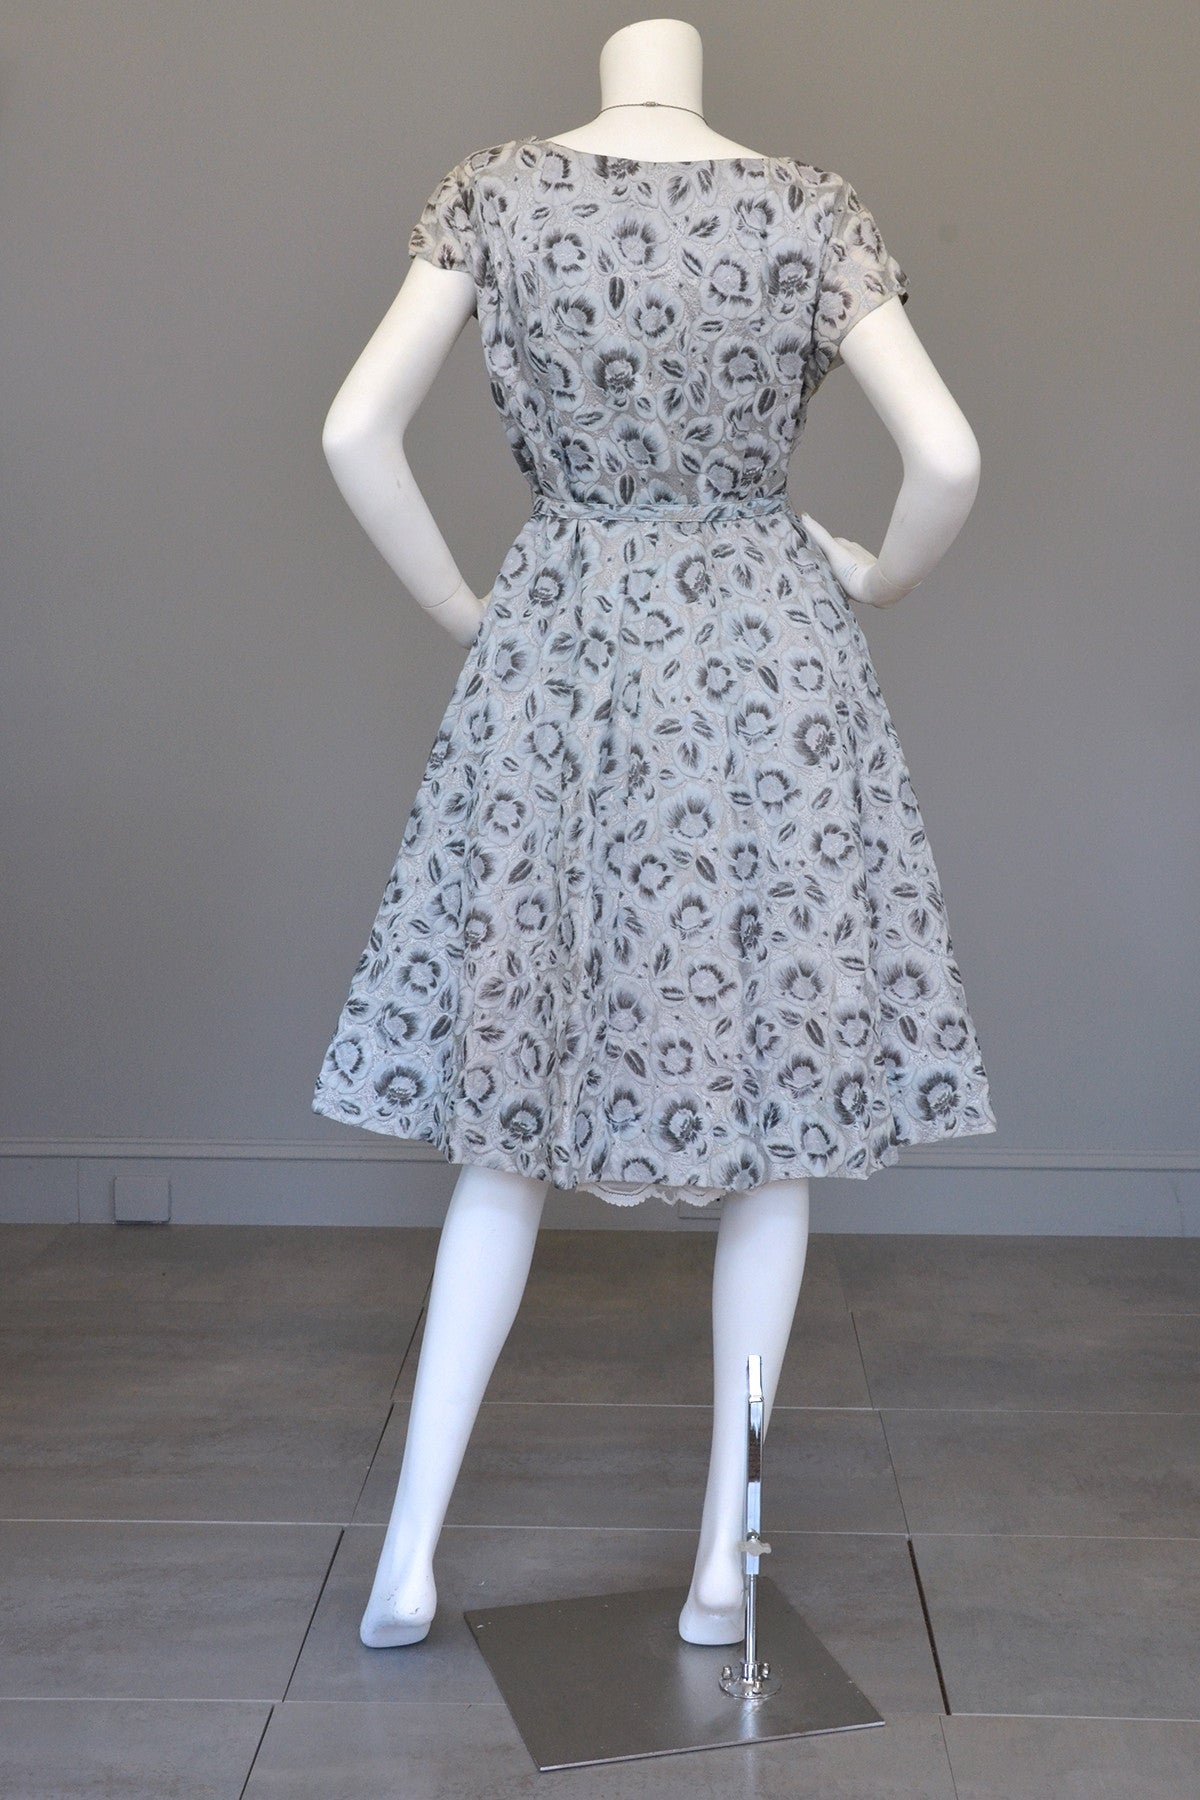 1950s Powder Blue with Rhinestone Bodice Vintage Party Dress Novelty Floral Print, Medium